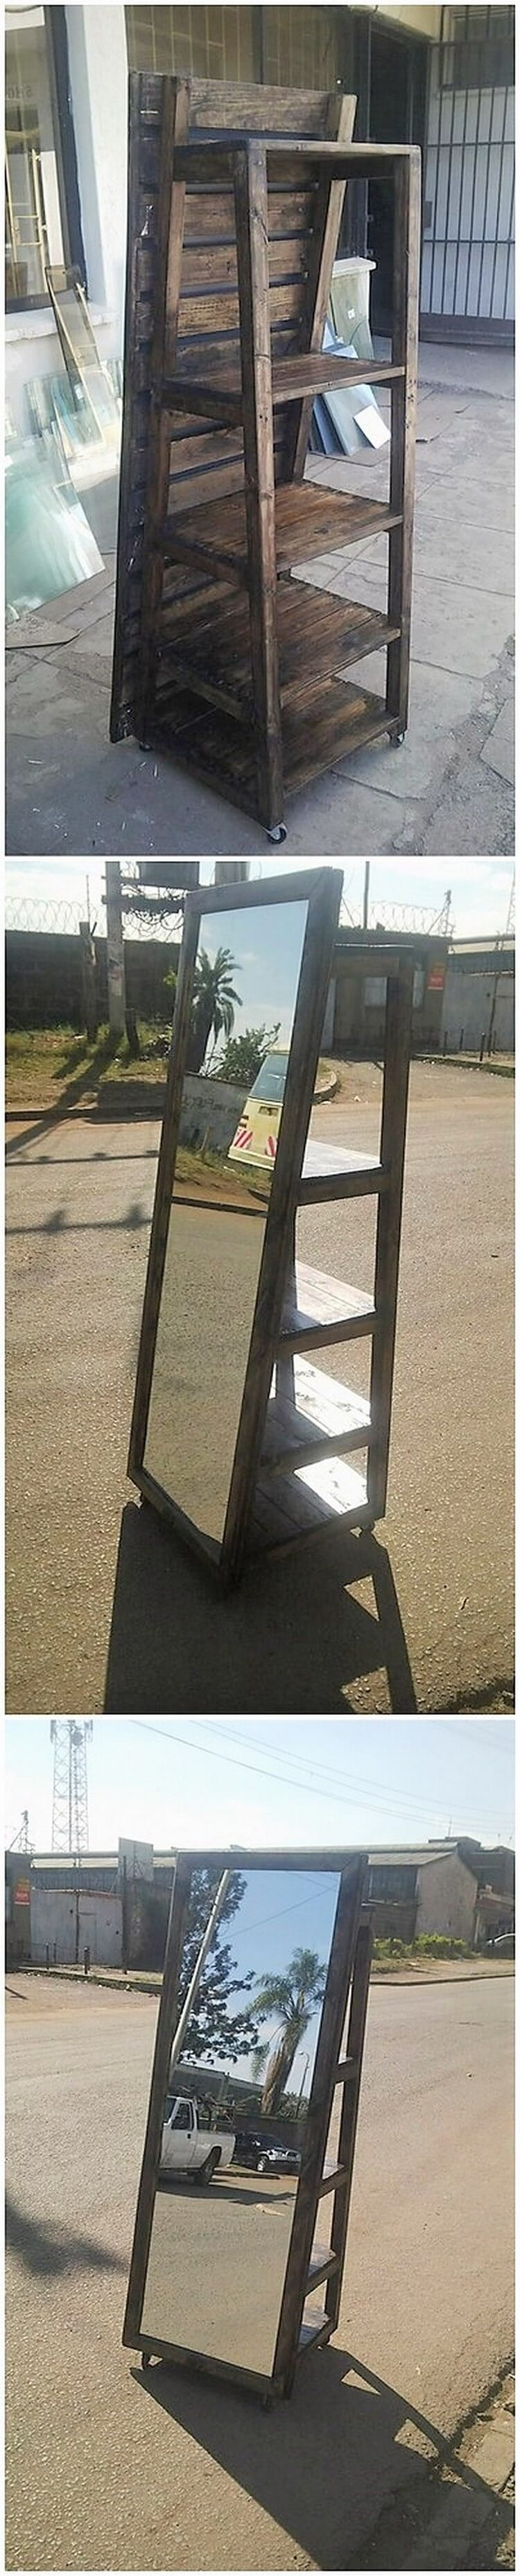 Pallet Shelving Stand with Mirror